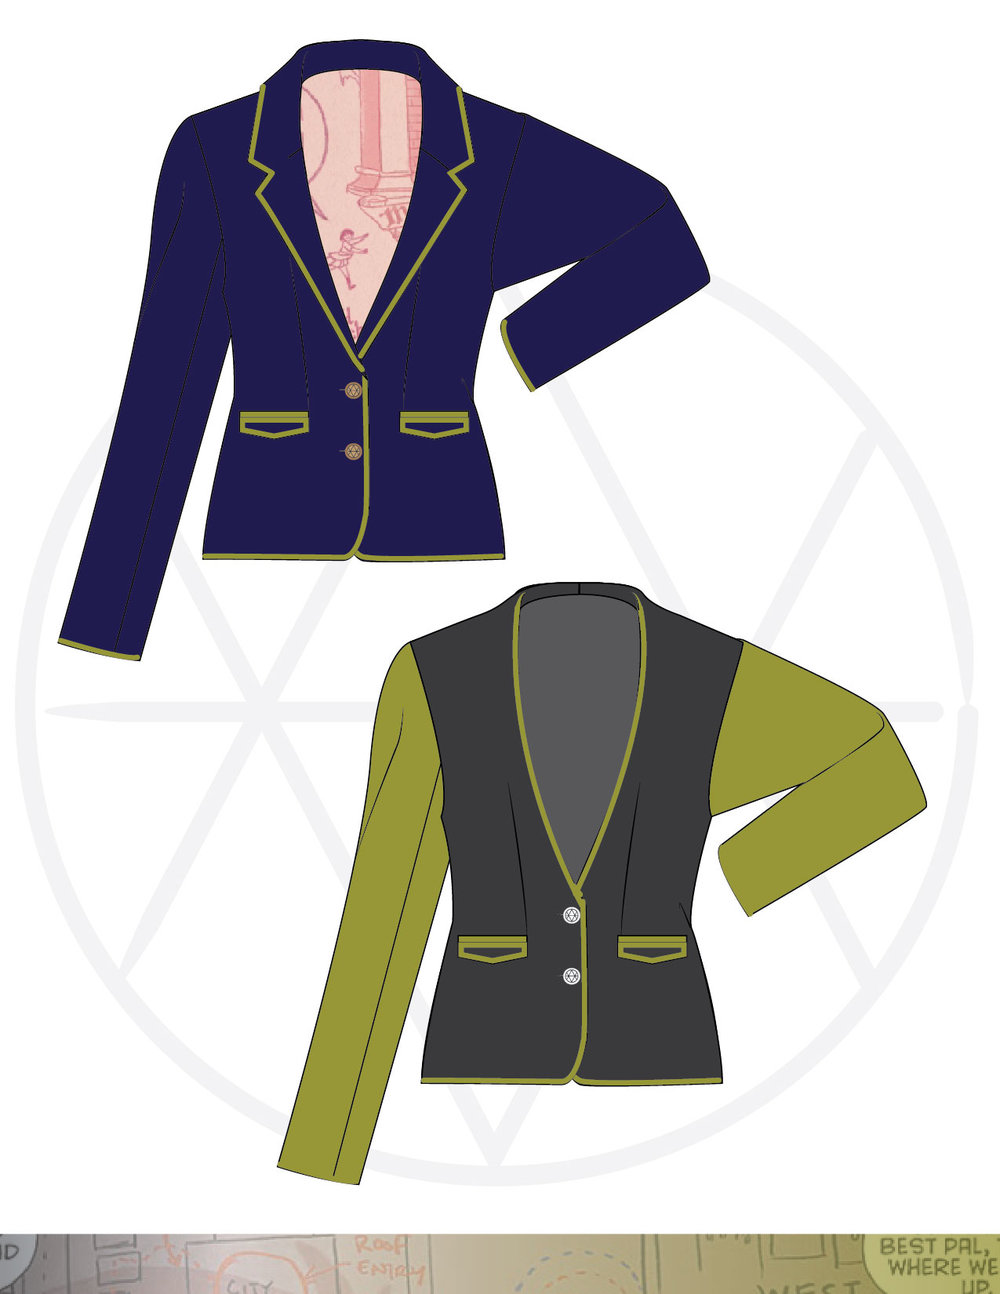 Blazer two ways: classic and collarless with color blocked sleeves